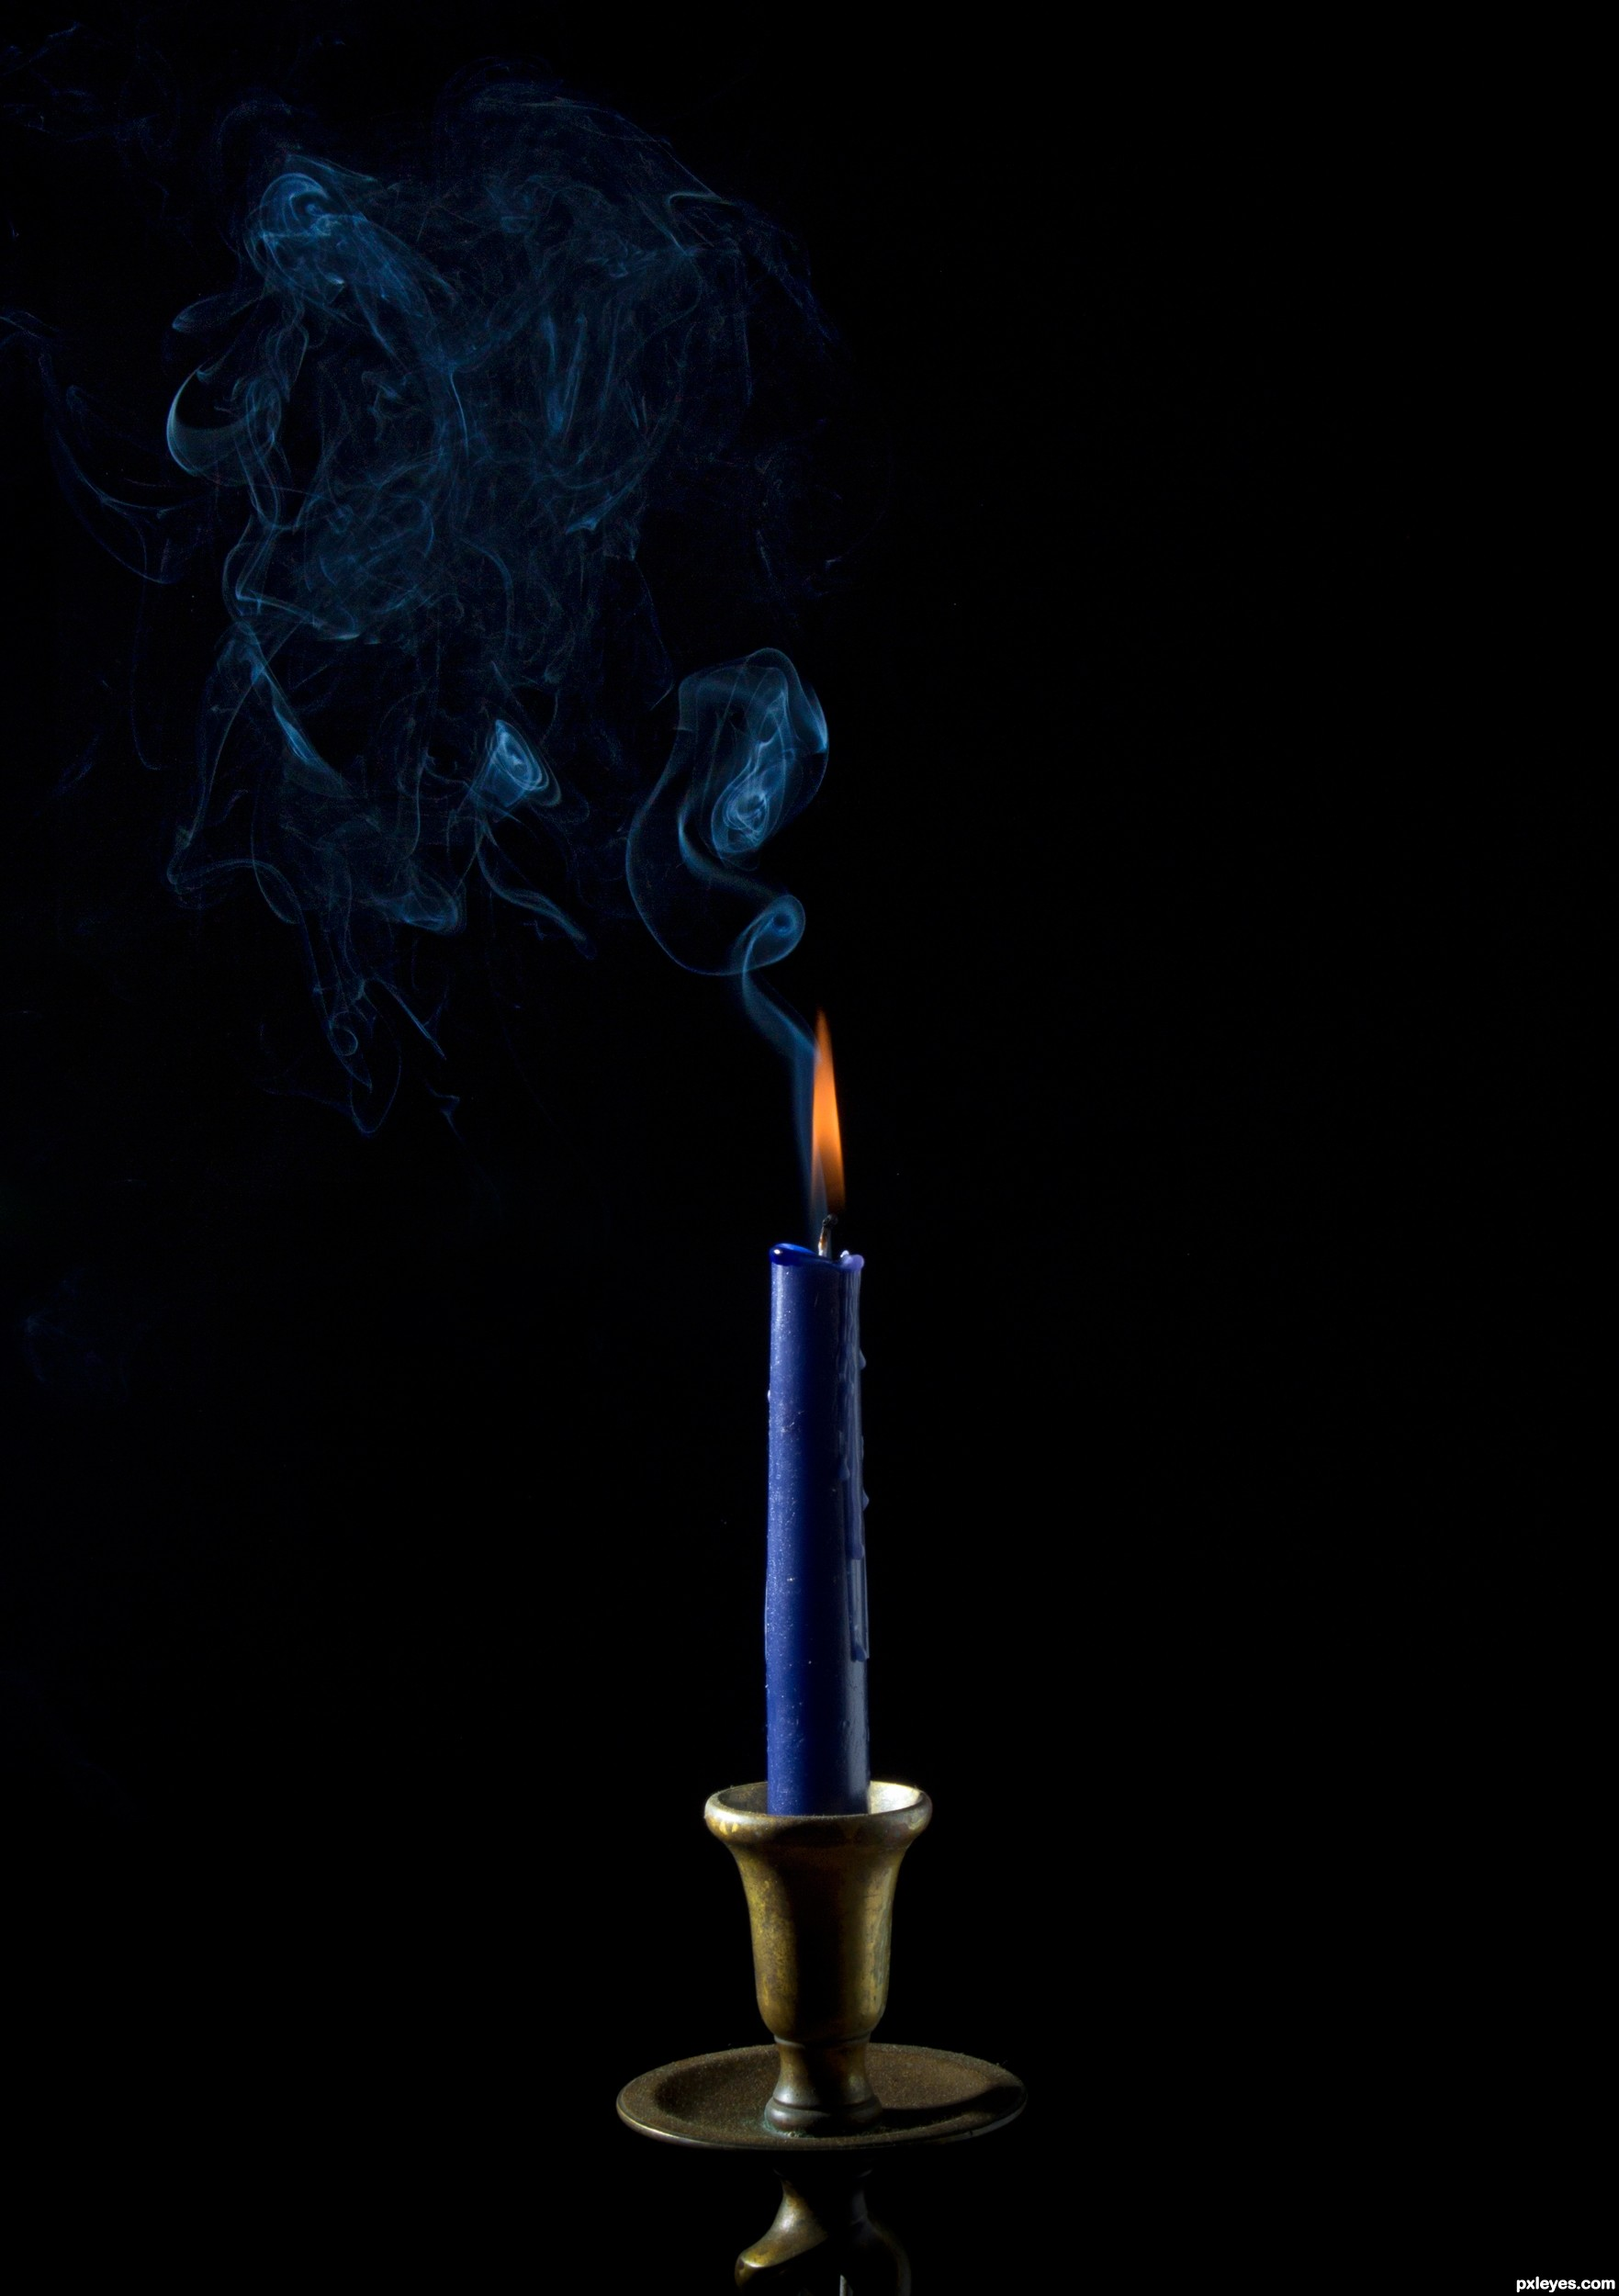 Good Night Picture By Friiskiwi For Smoking Objects Photography Contest Pxleyes Com